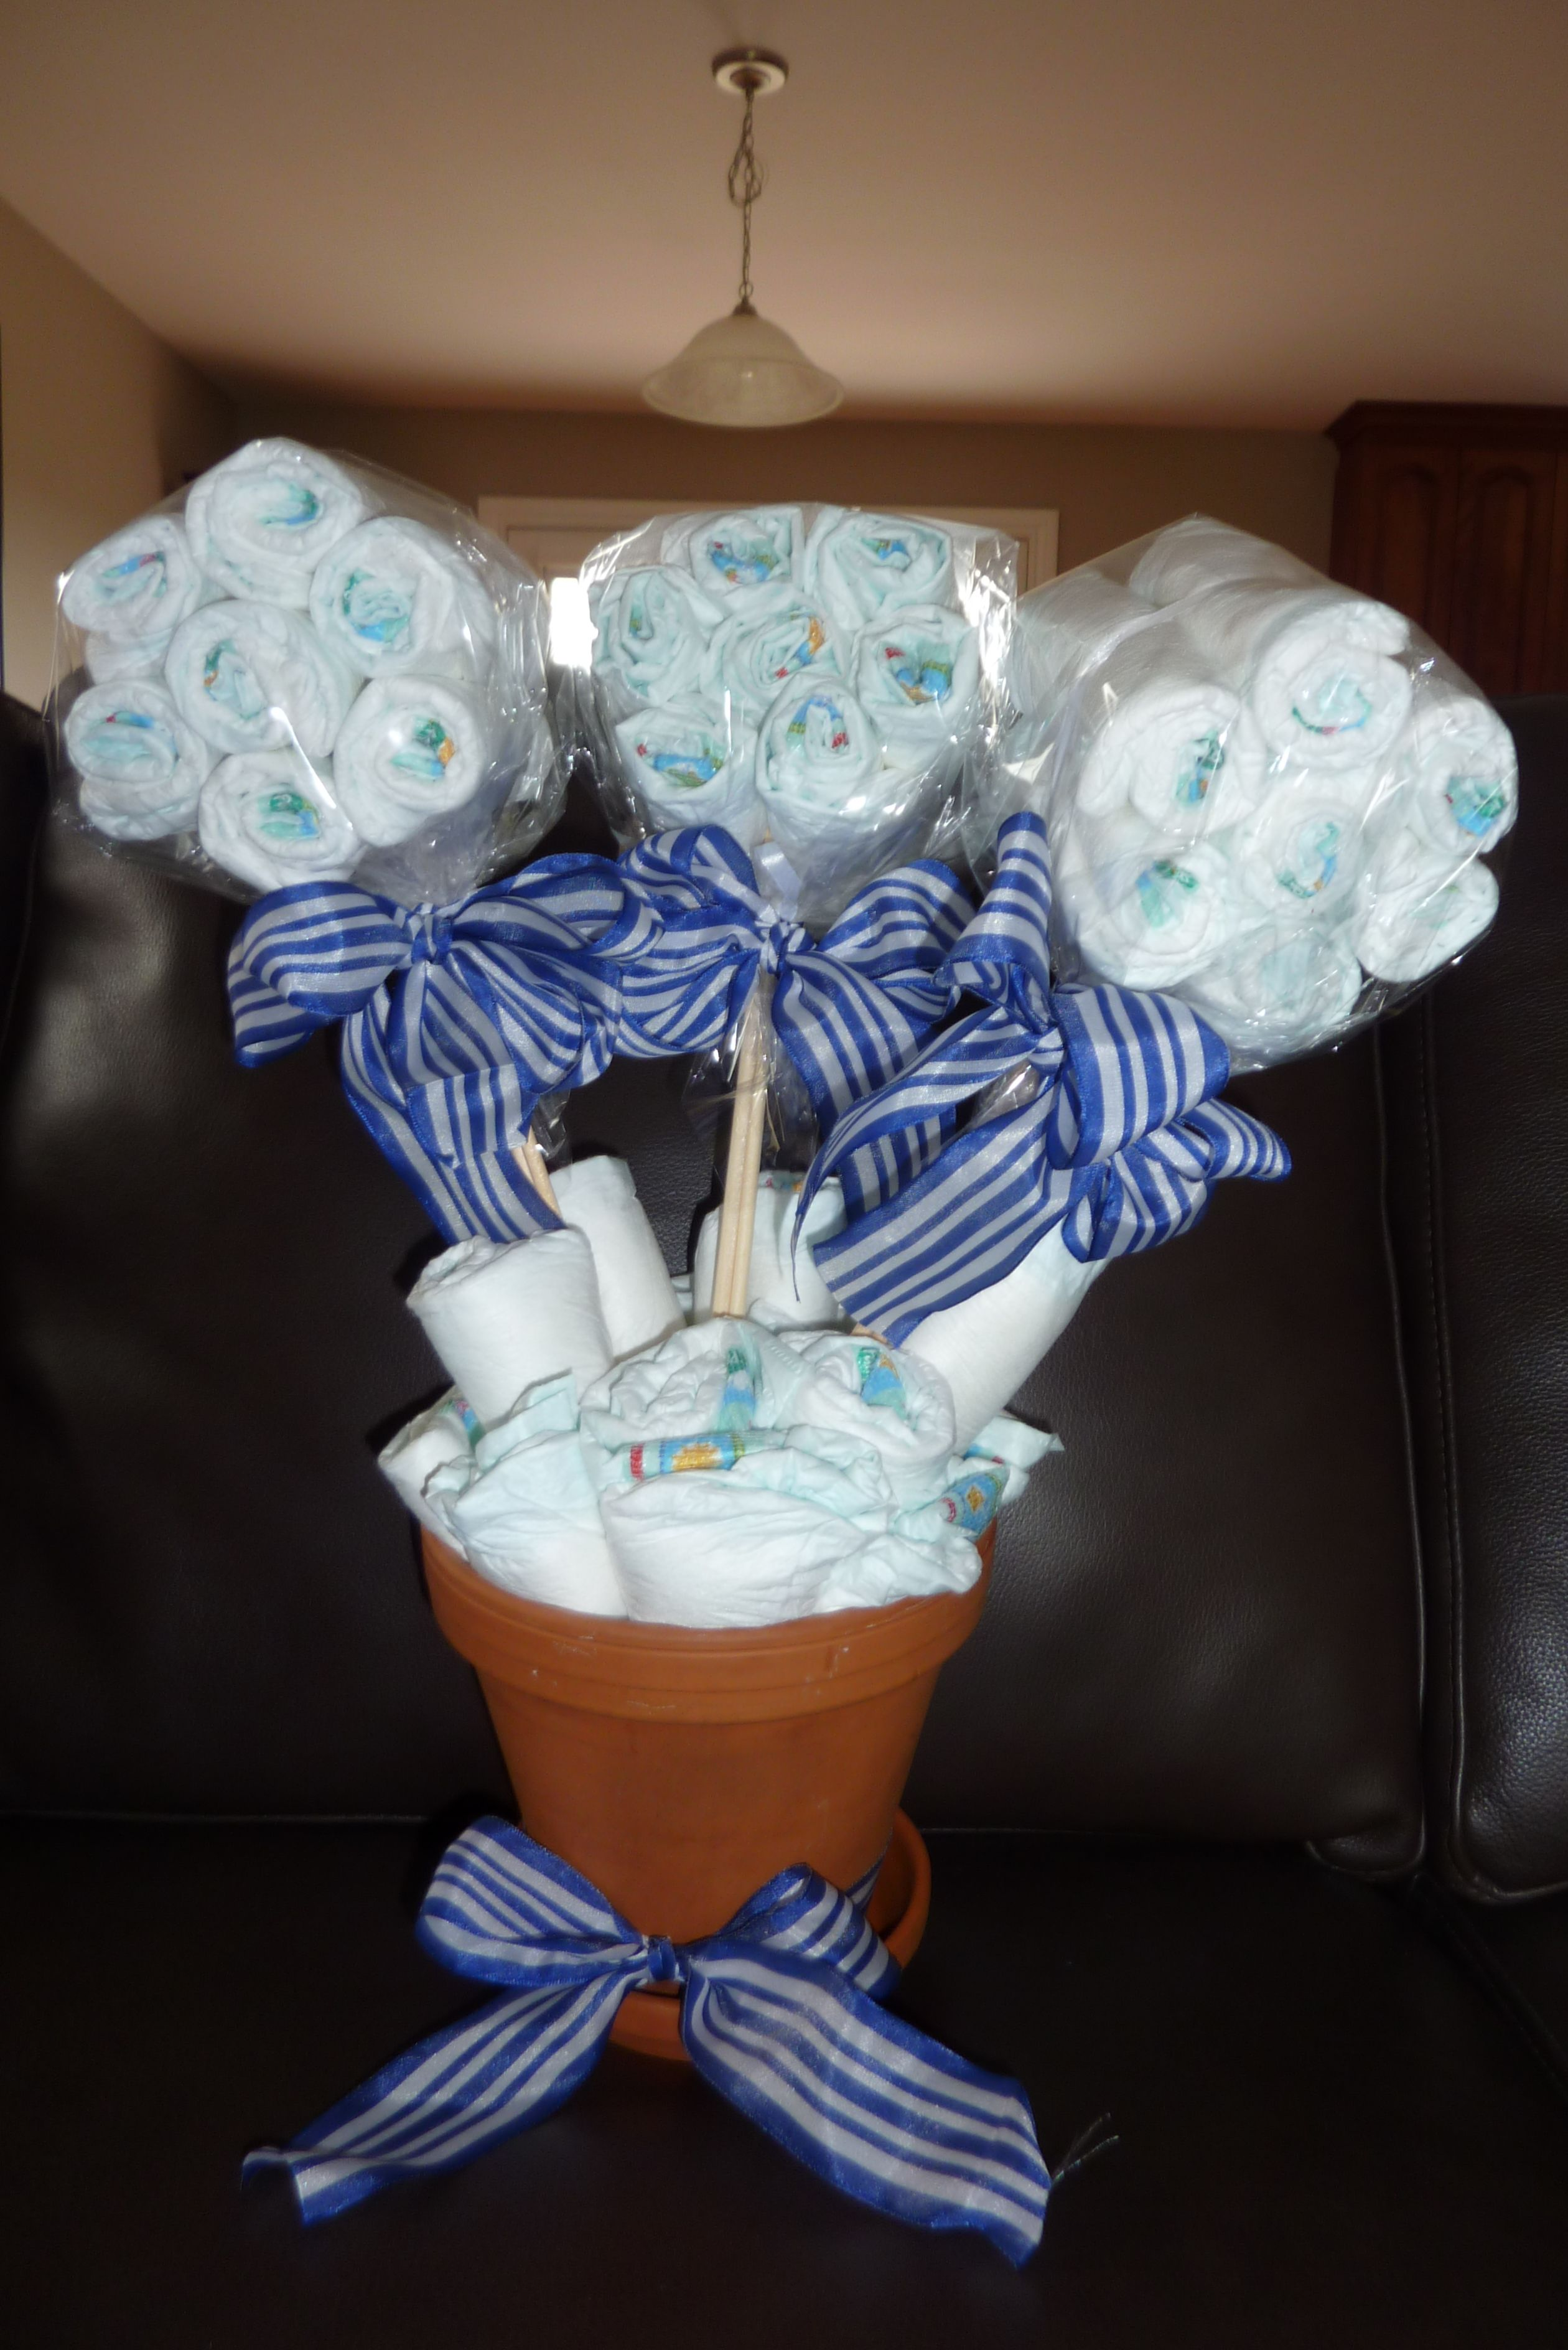 My Gift For My Friends Diaper And Wipes Baby Shower For